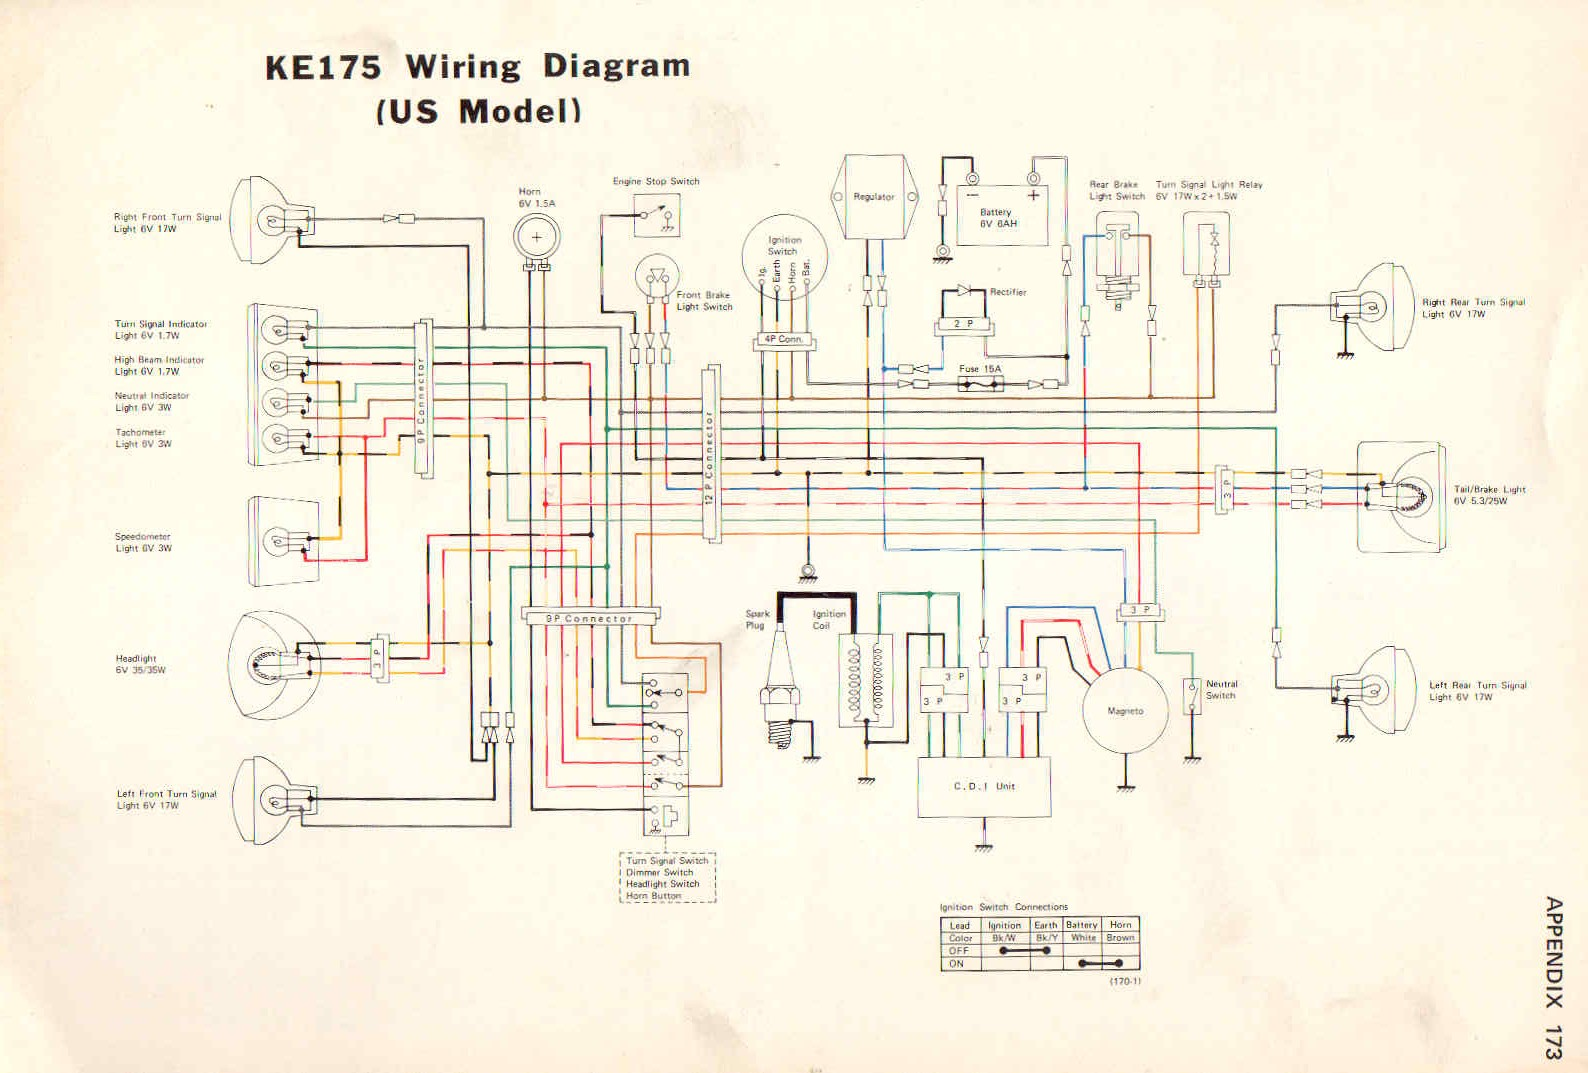 kawasaki wiring diagrams molecular orbital energy level diagram for no ke175 service manual